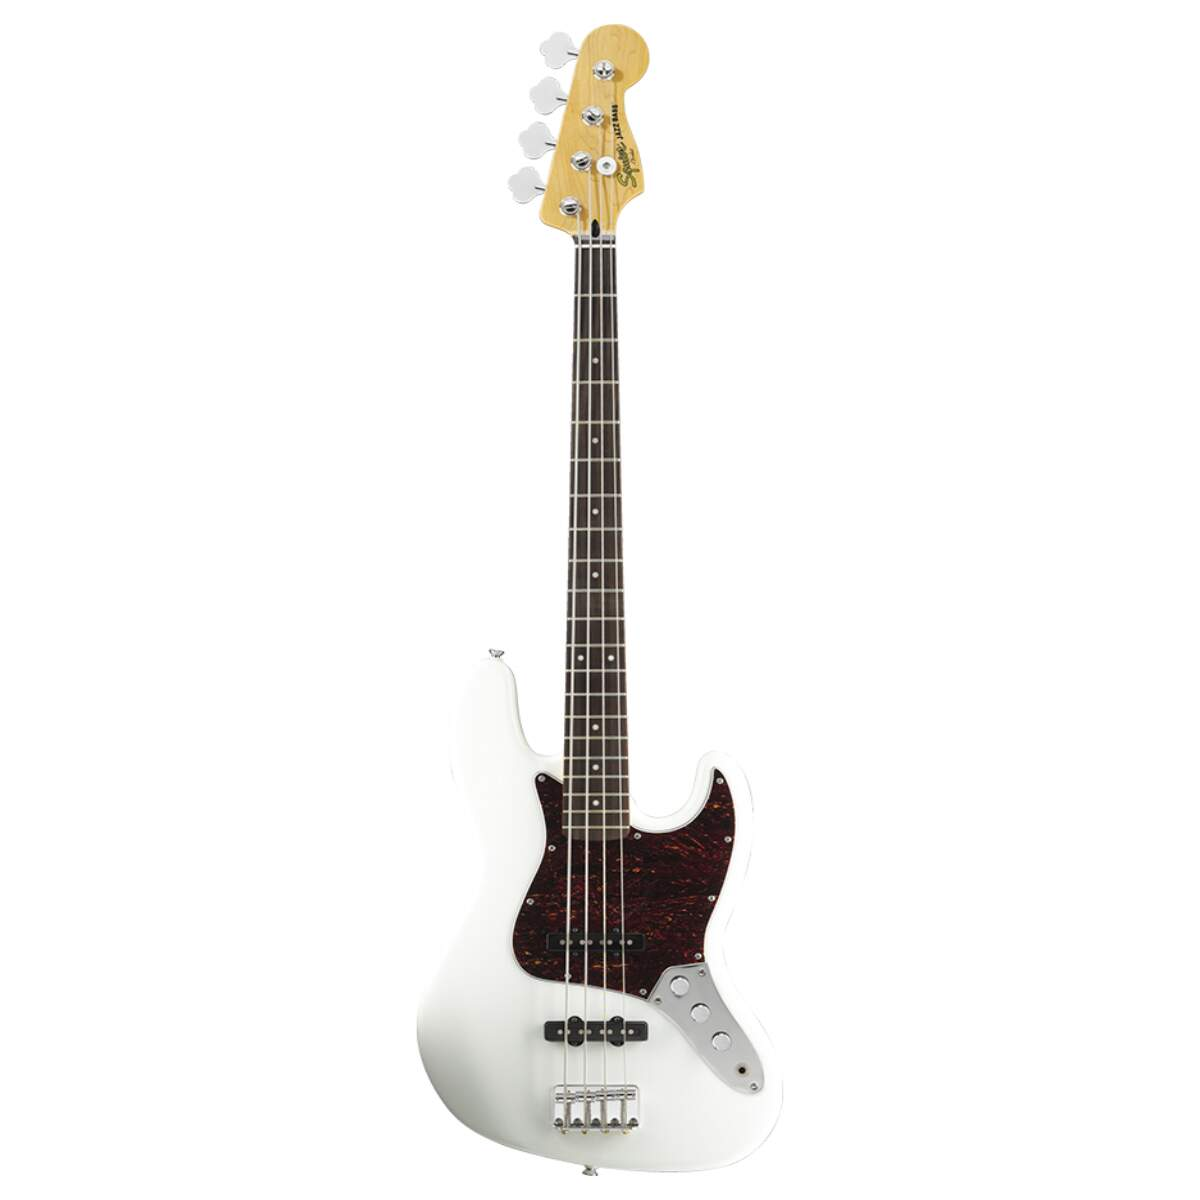 Contra Baixo Fender Squier Vintage Modified J.Bass 505 Olympic White 030 6600.